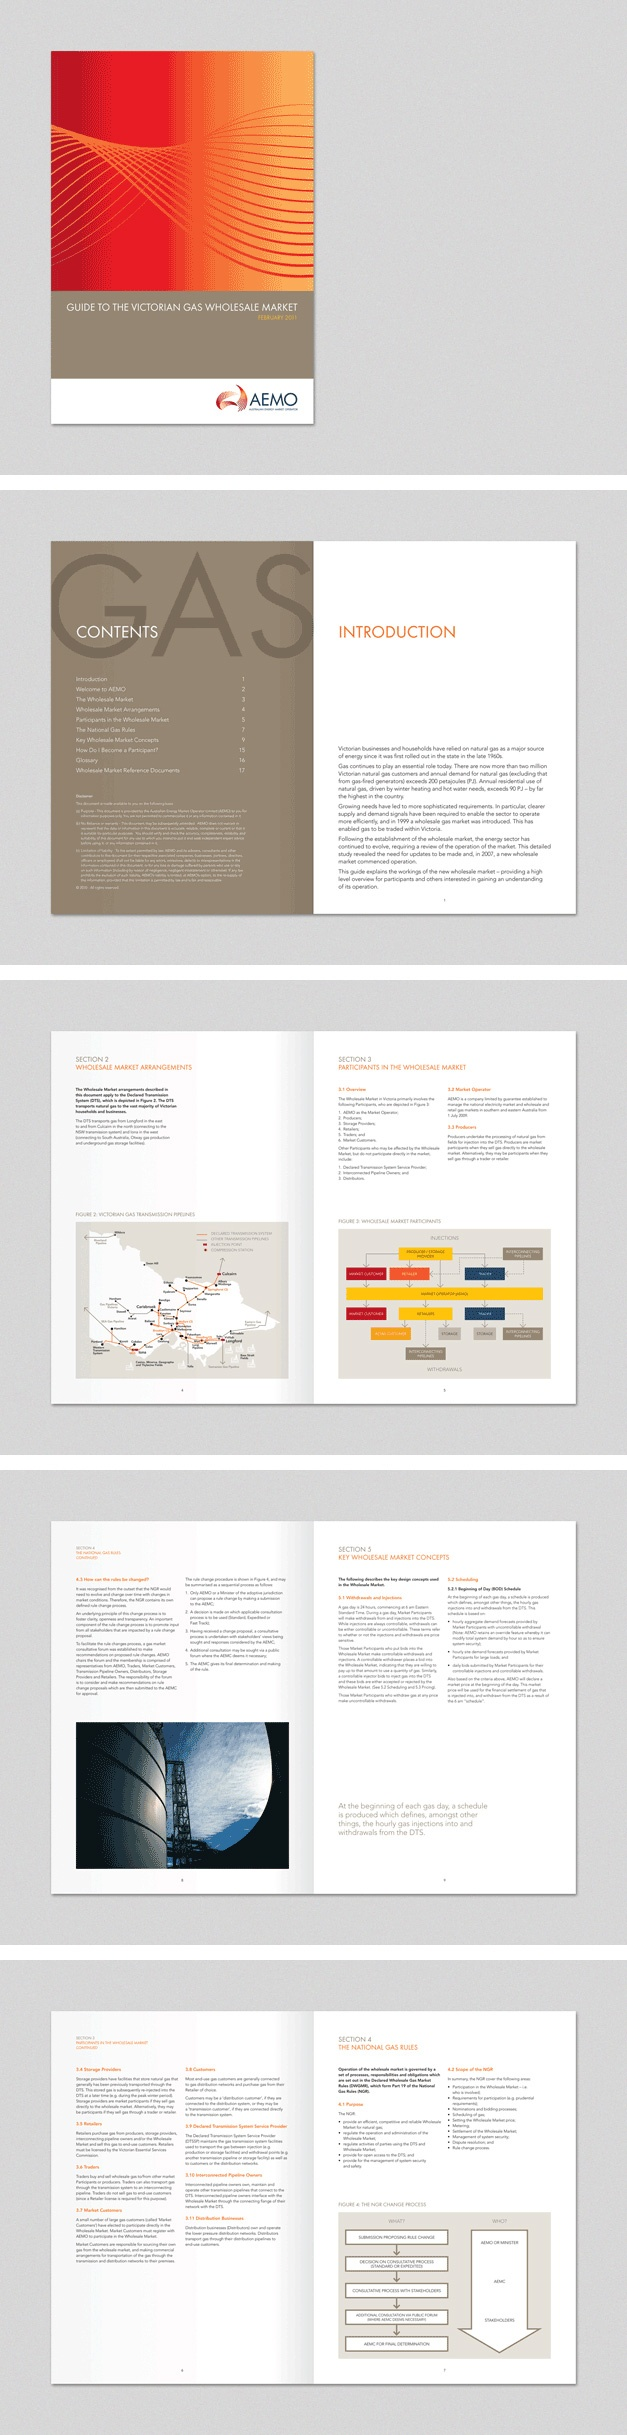 Brochure for AEMO. www.fenton.com.au #communication #PR #branding #graphicdesign